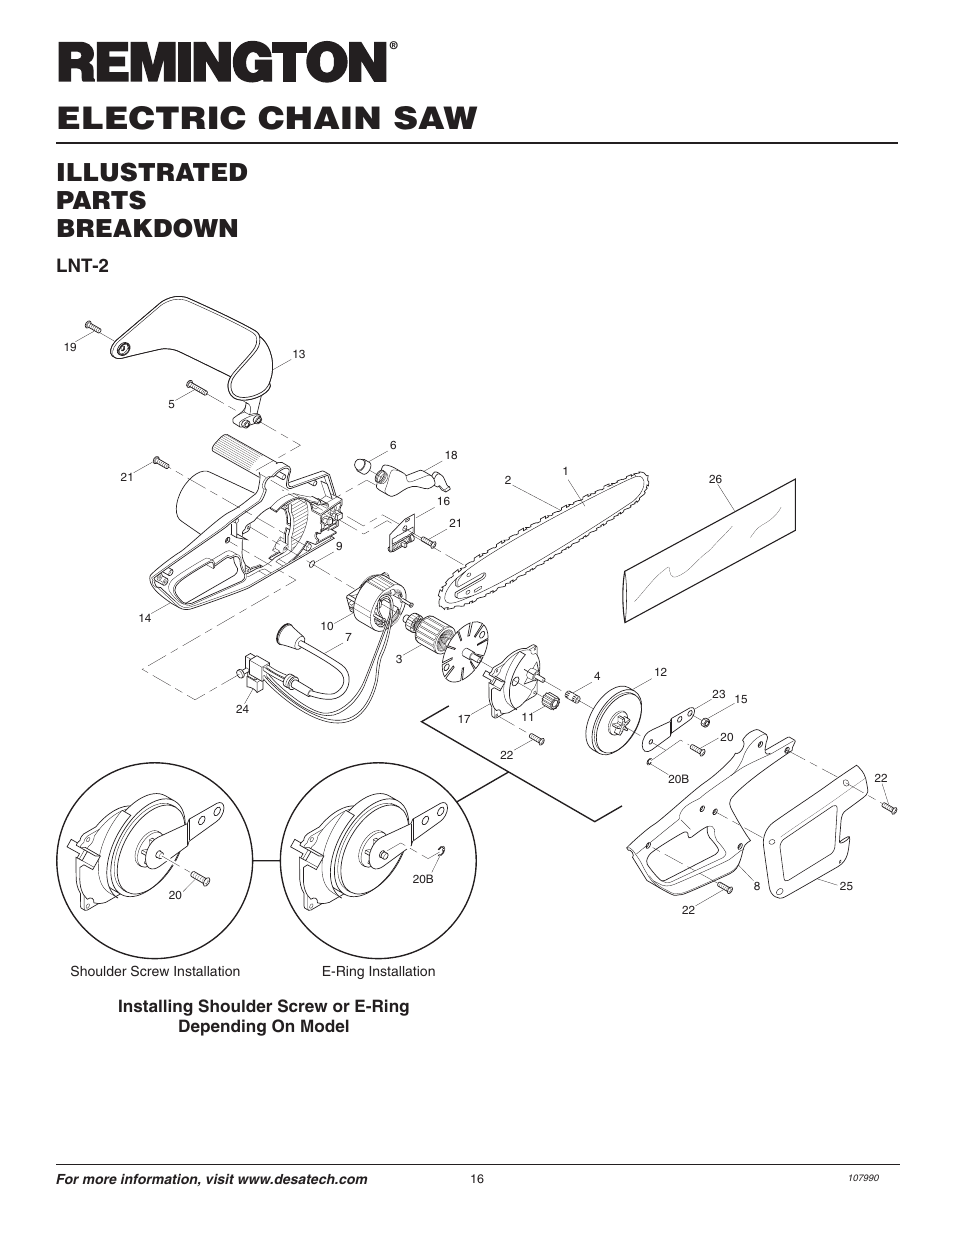 Electric chain saw, Illustrated parts breakdown, Lnt-2